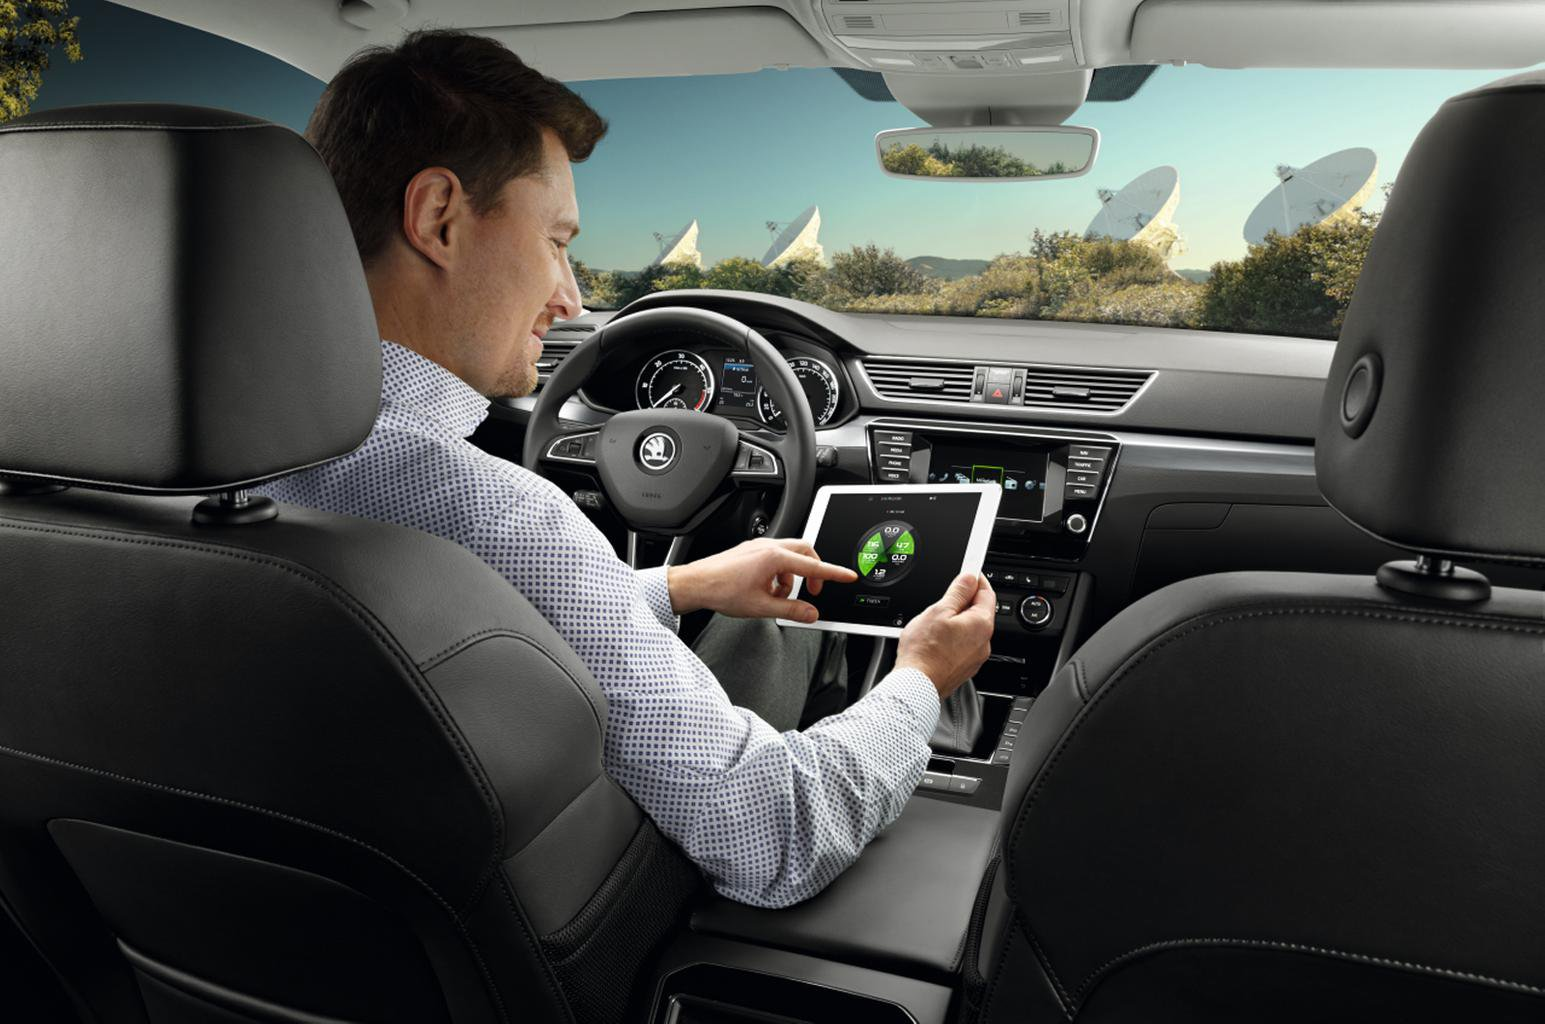 Promoted: Skoda Superb - smart technology ensures safety and comfort